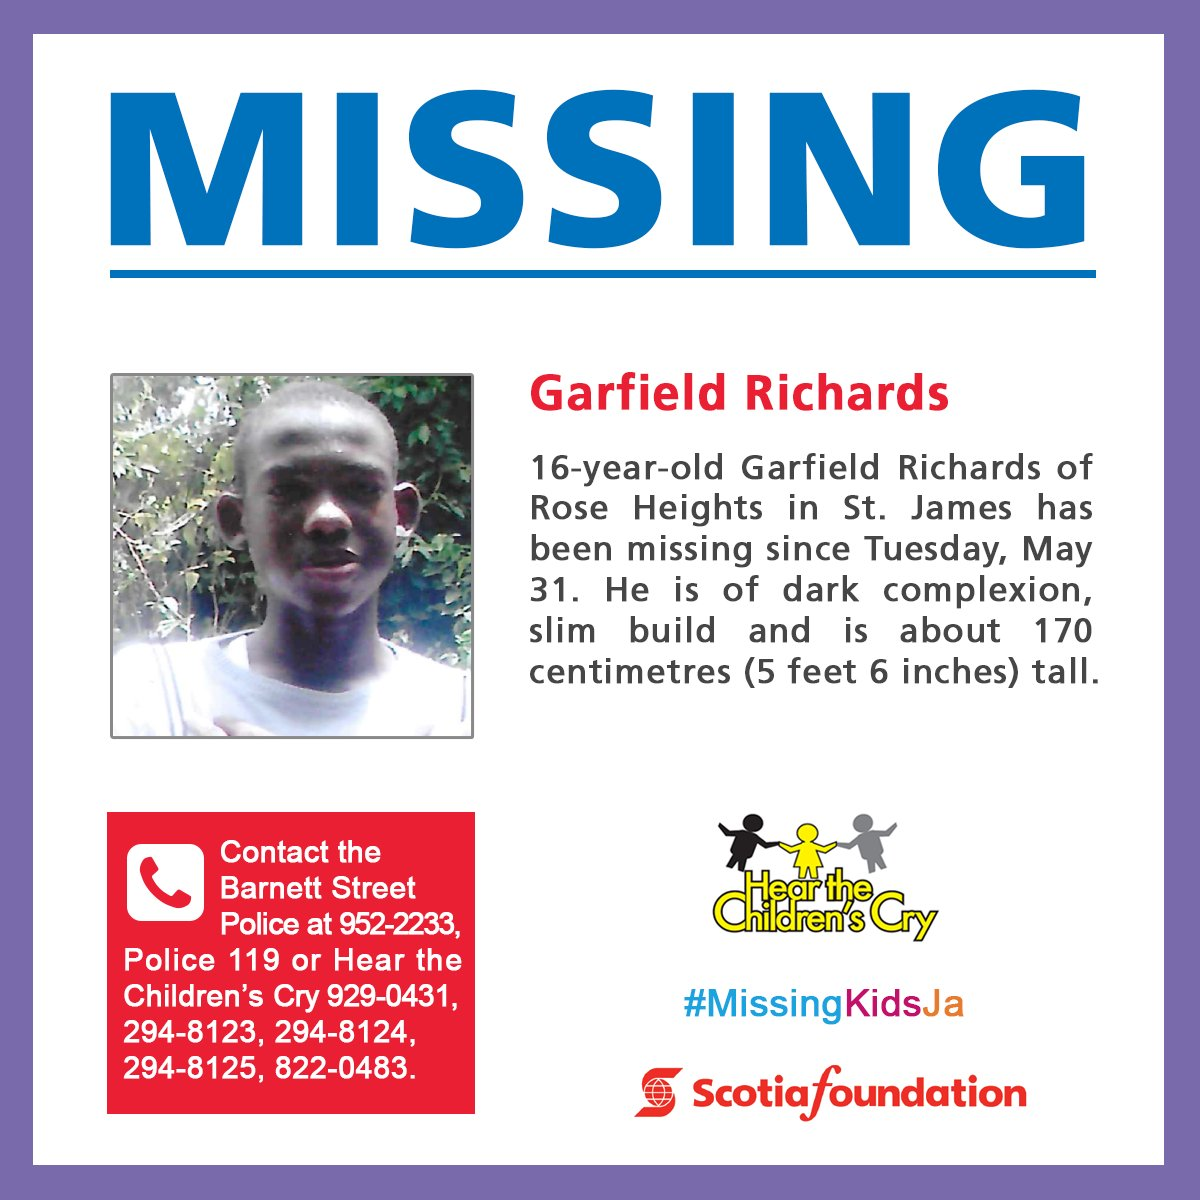 Garfield Richards has been missing since May 31. Help us reunite him with his family. #MissingKidsJa #OurChildrenJa https://t.co/dNrLrjgkEM